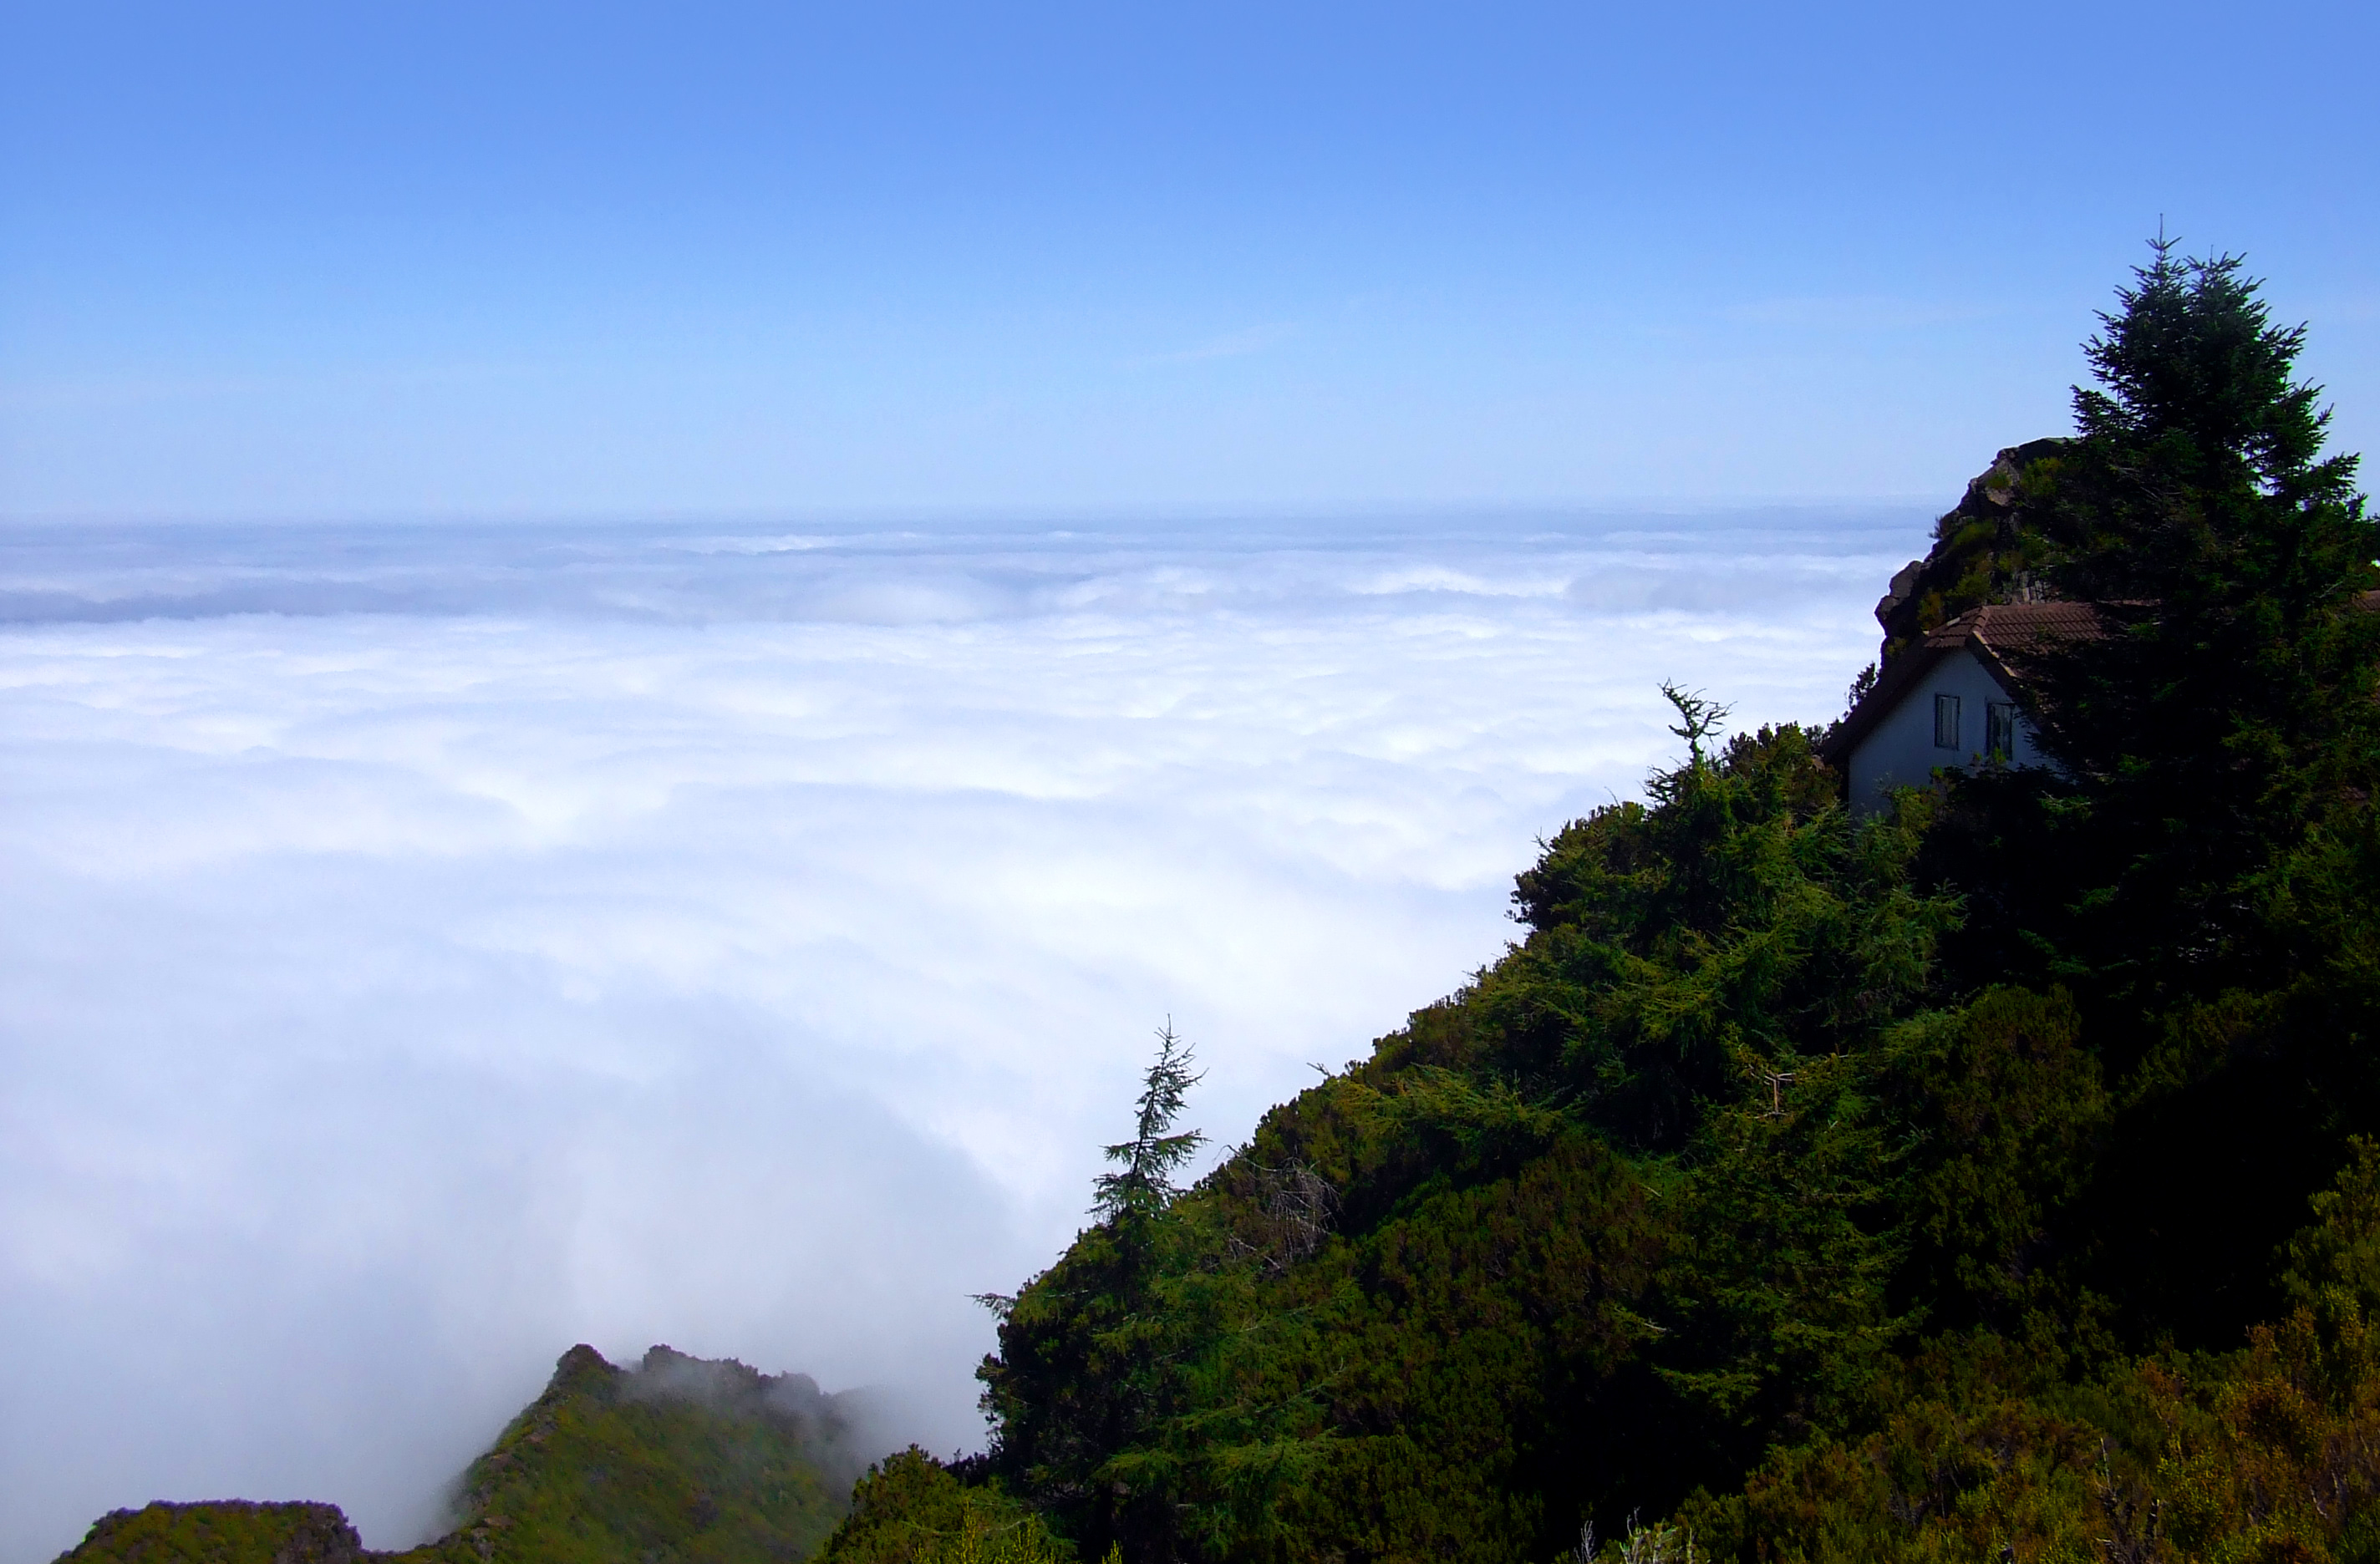 Mountain cabin above the clouds photo